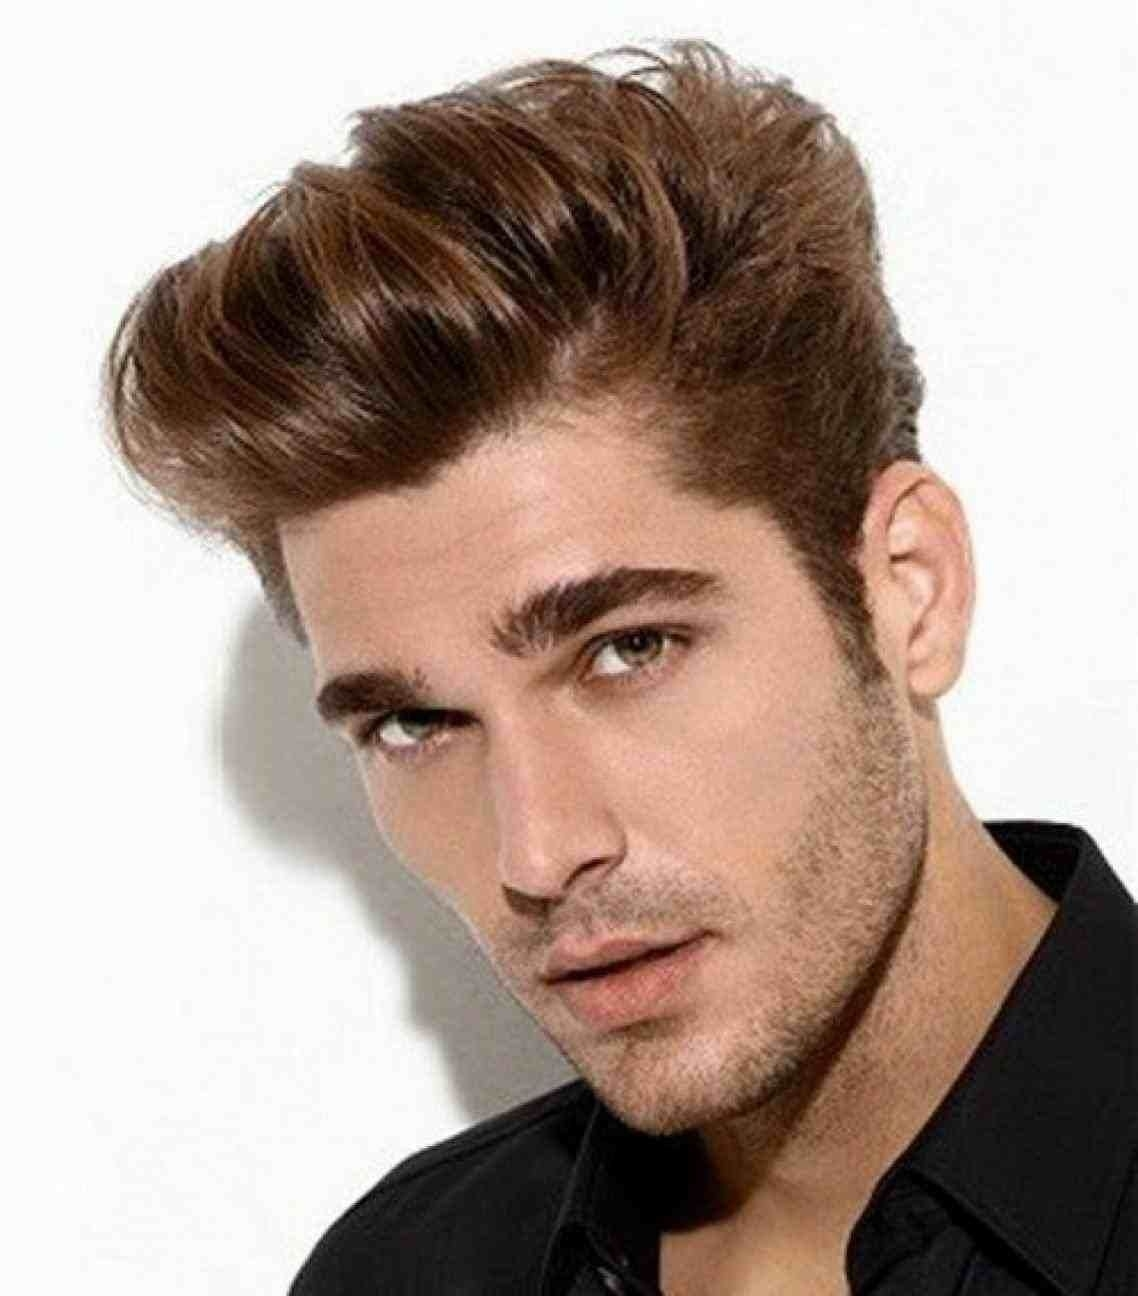 New Simple Indian Hairstyle For Boy - Wavy Haircut